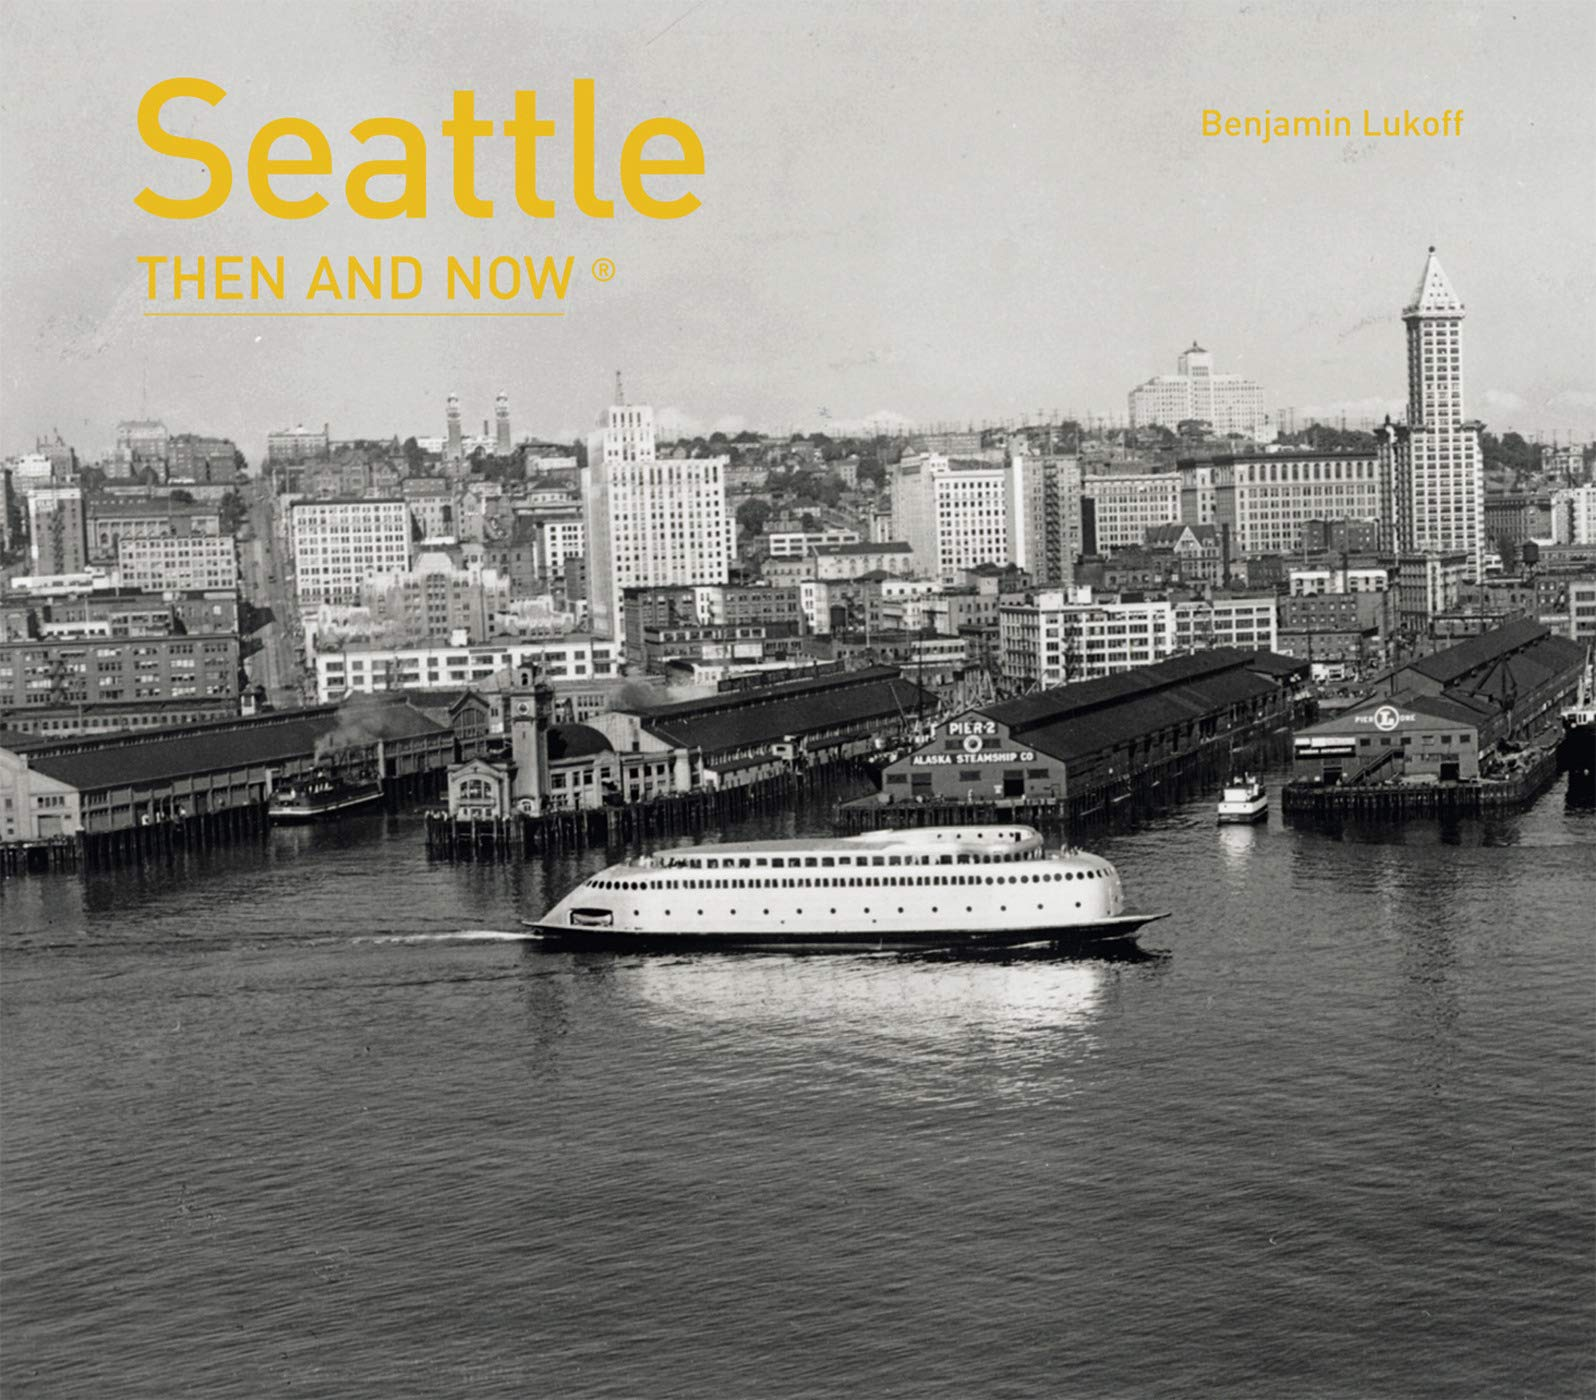 Seattle Then and Now®: Benjamin Lukoff: 9781910496008: Amazon com: Books